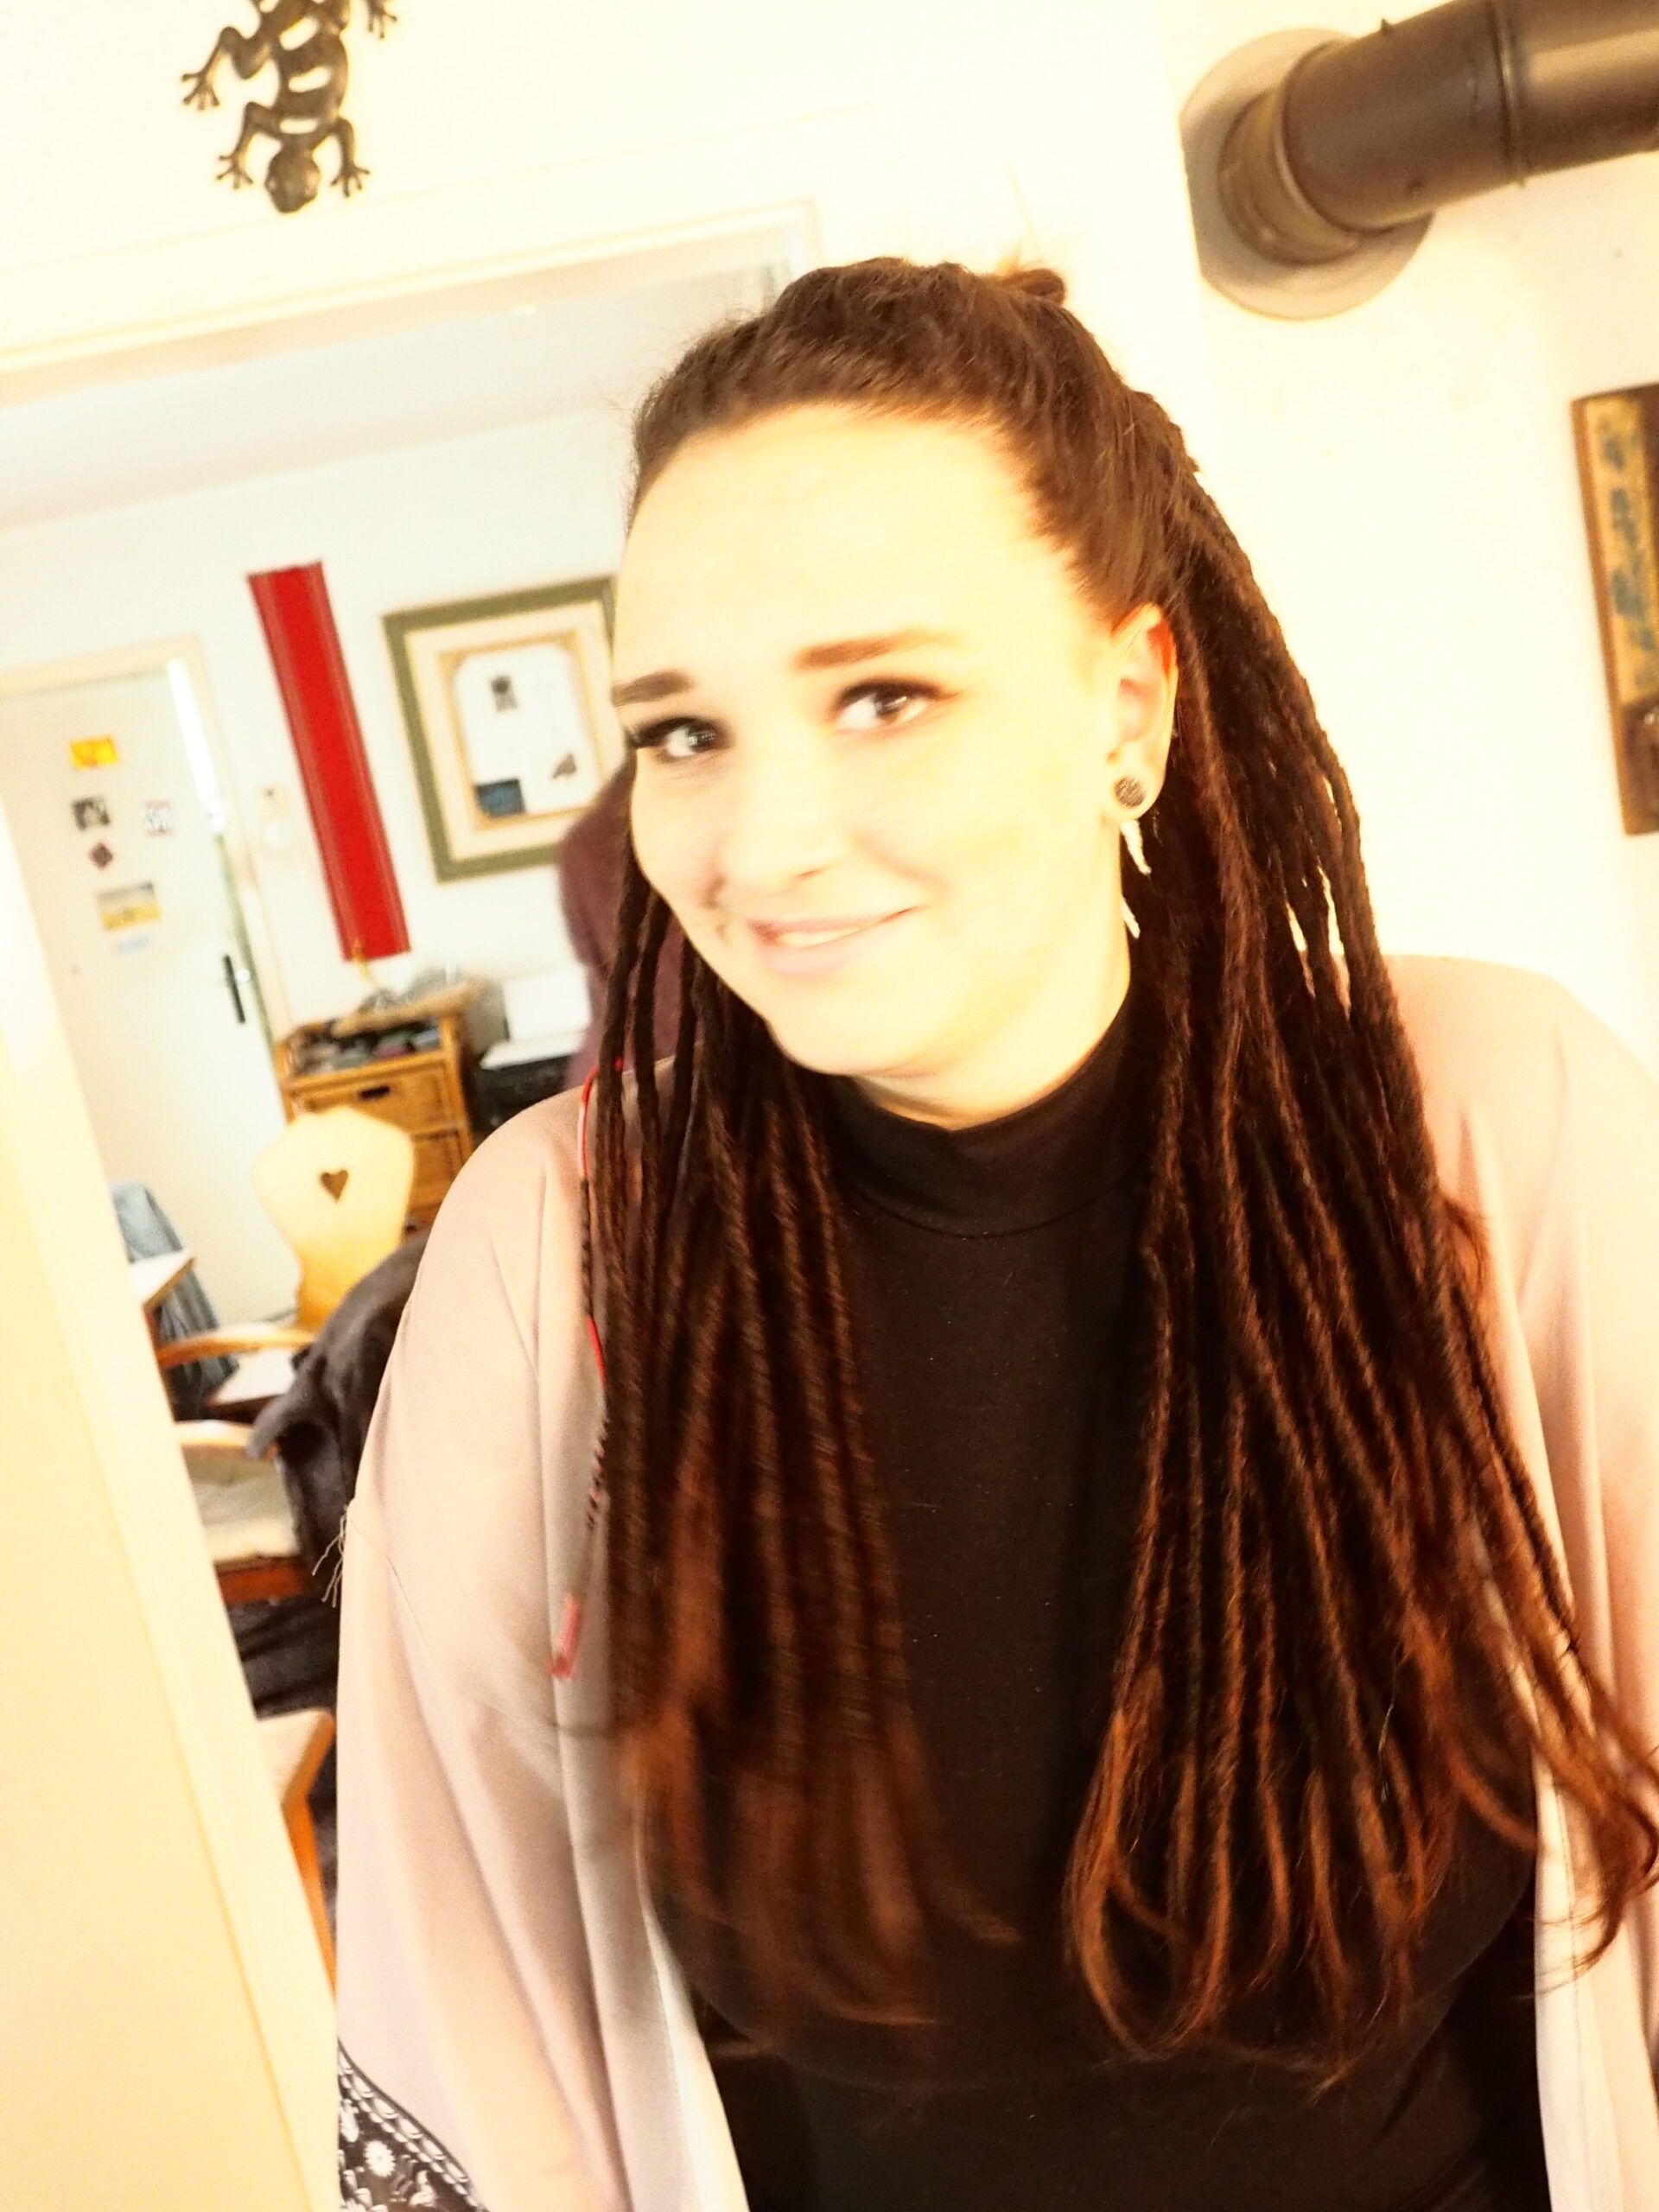 Girl with red dreads